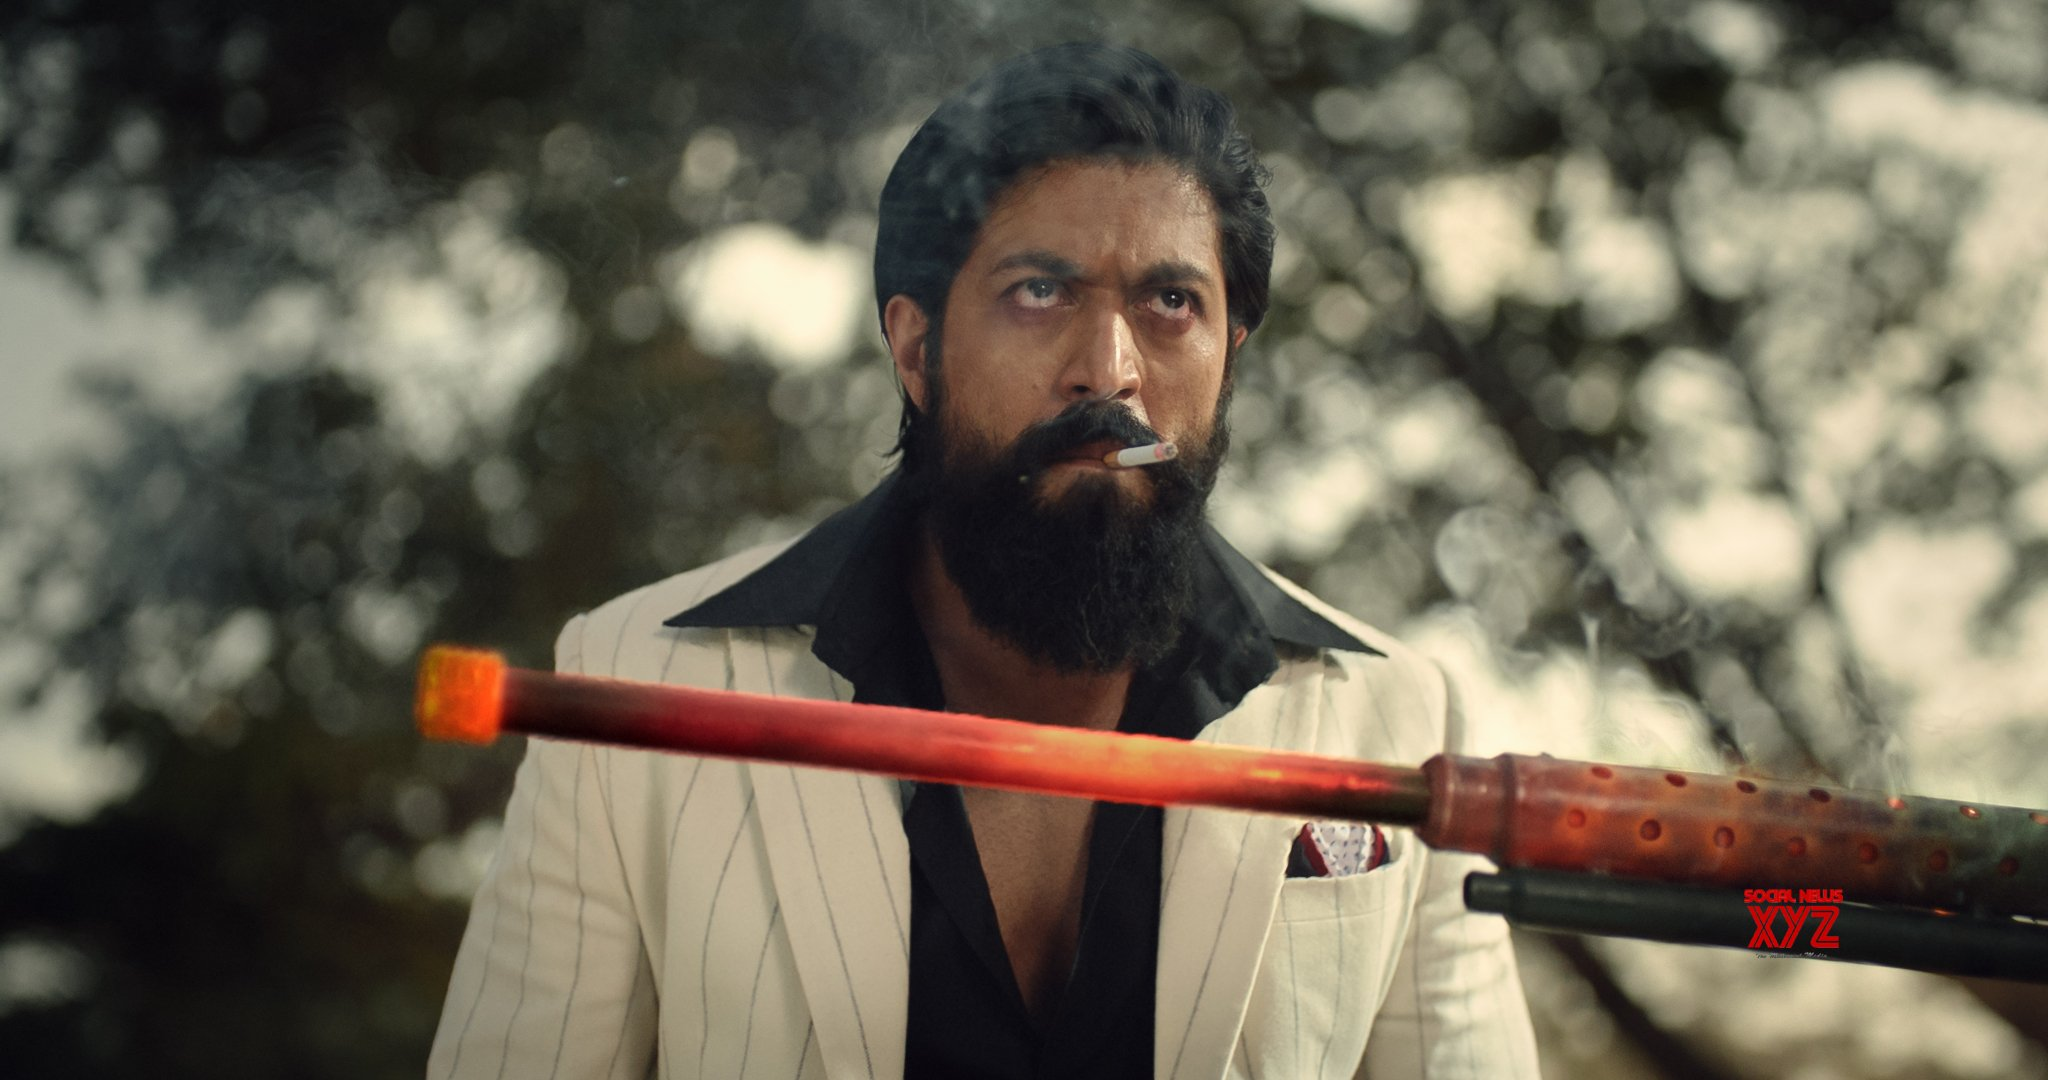 KGF Chapter 2 Will Have More Emotions and Action Than Chapter 1: Yash